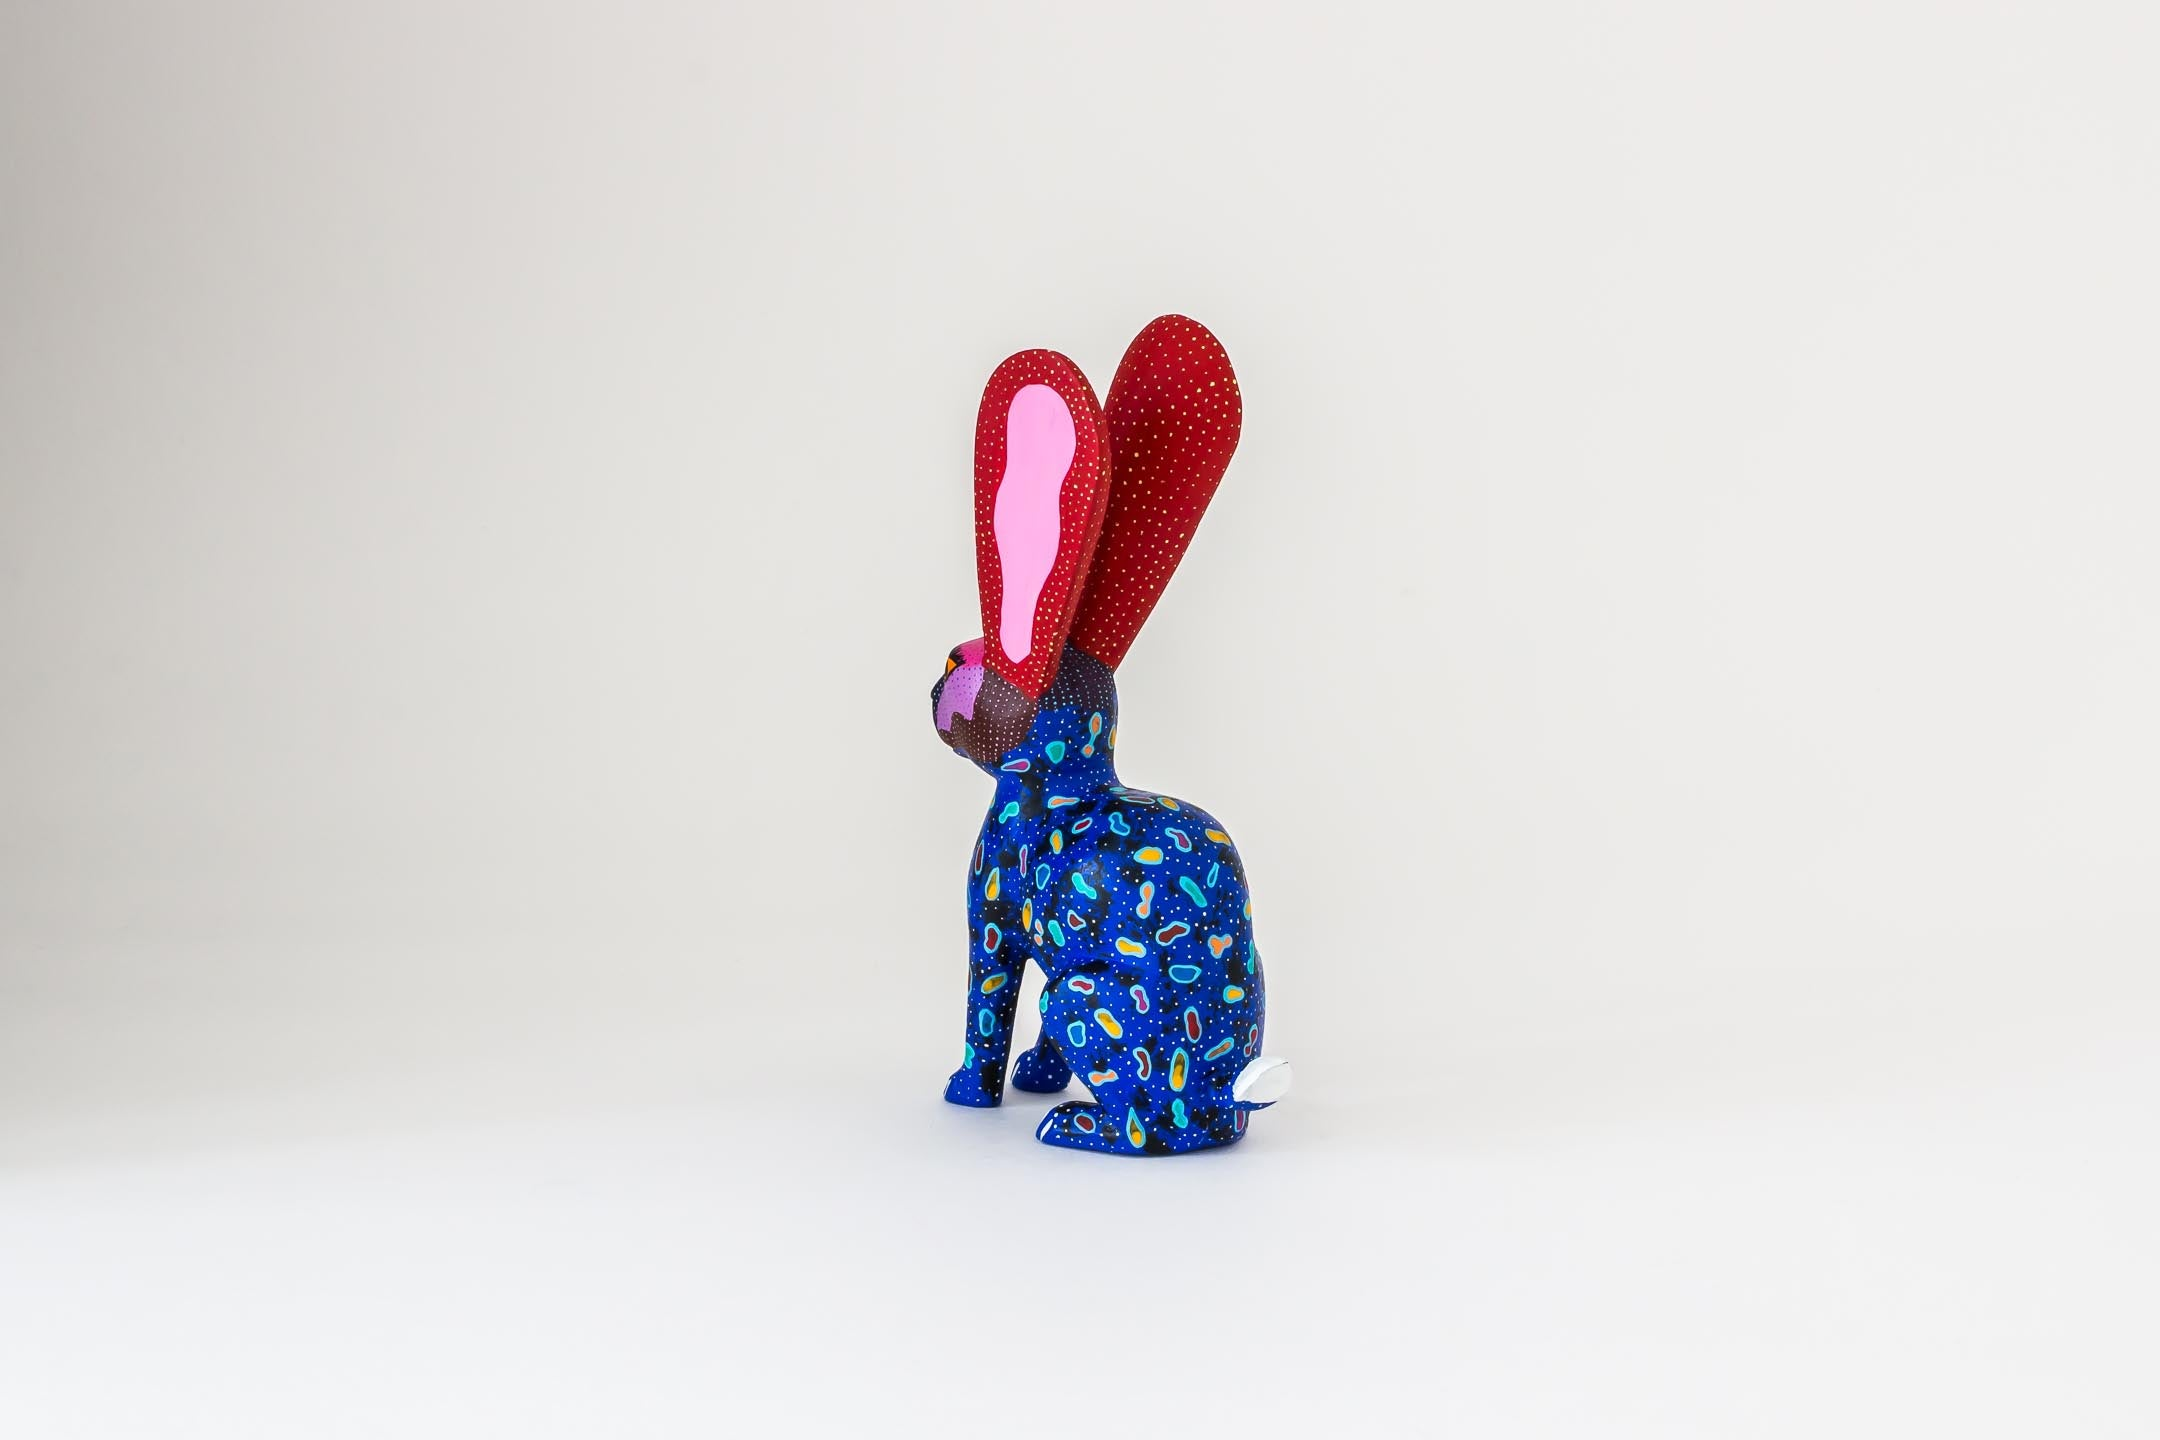 Blue Rabbit with Golden Nose